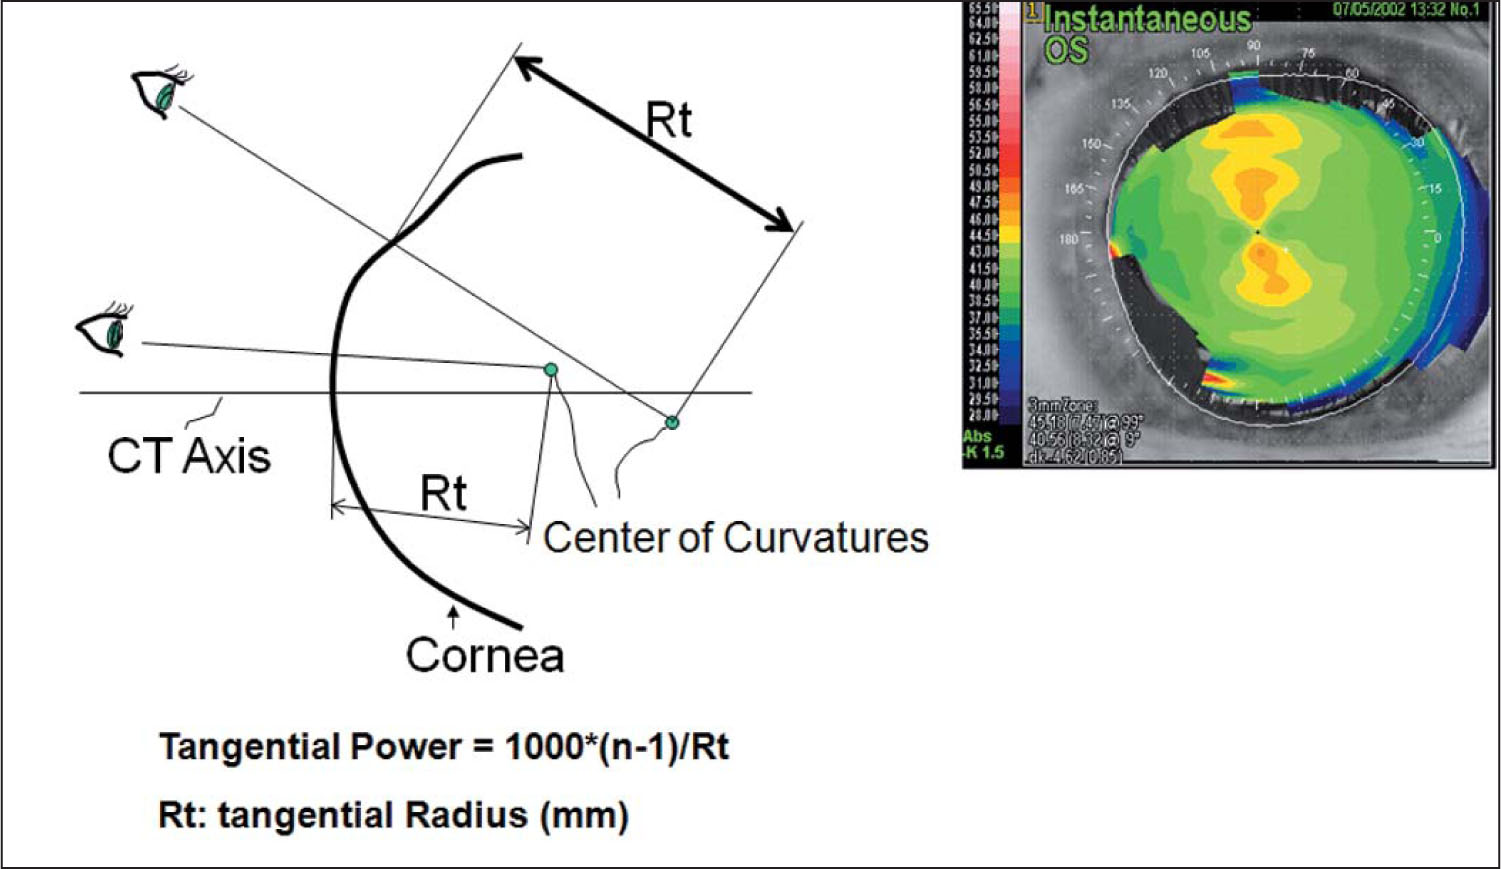 Schematic of Instantaneous Topography Including Sample Topography of the Left Eye (same as Figure 1). Yellow Denotes Steeper Curvature than Green. CT Axis = Corneal Topography Axis